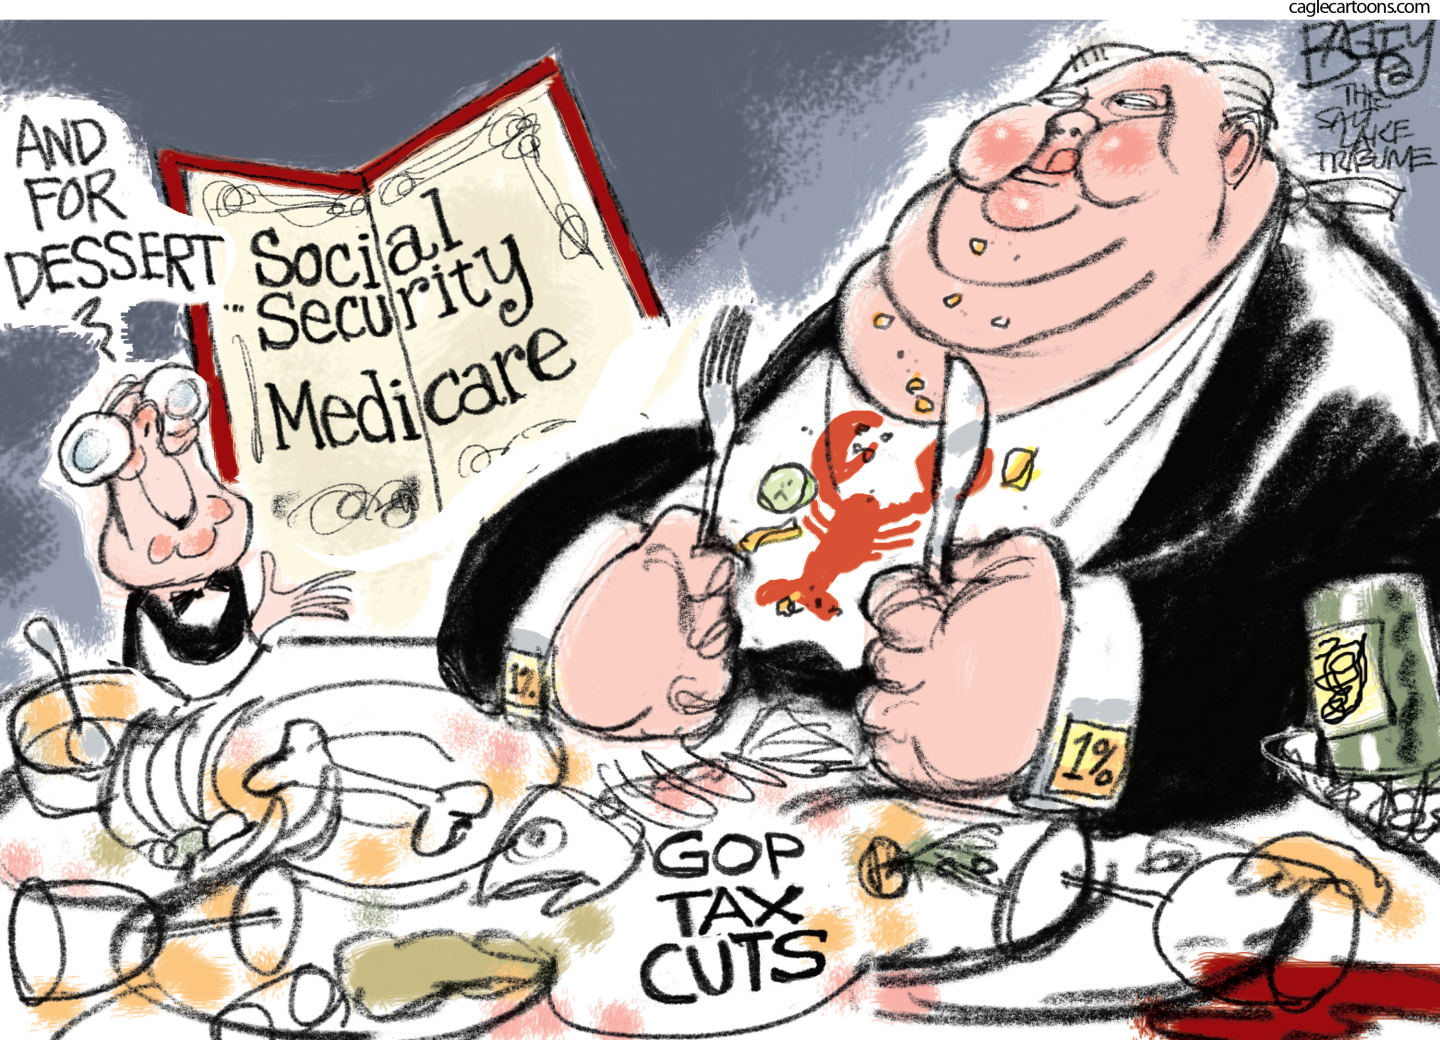 Republicans reject Federal healthcare funding, close rural hospitals and deny their constituents affordable medical care.